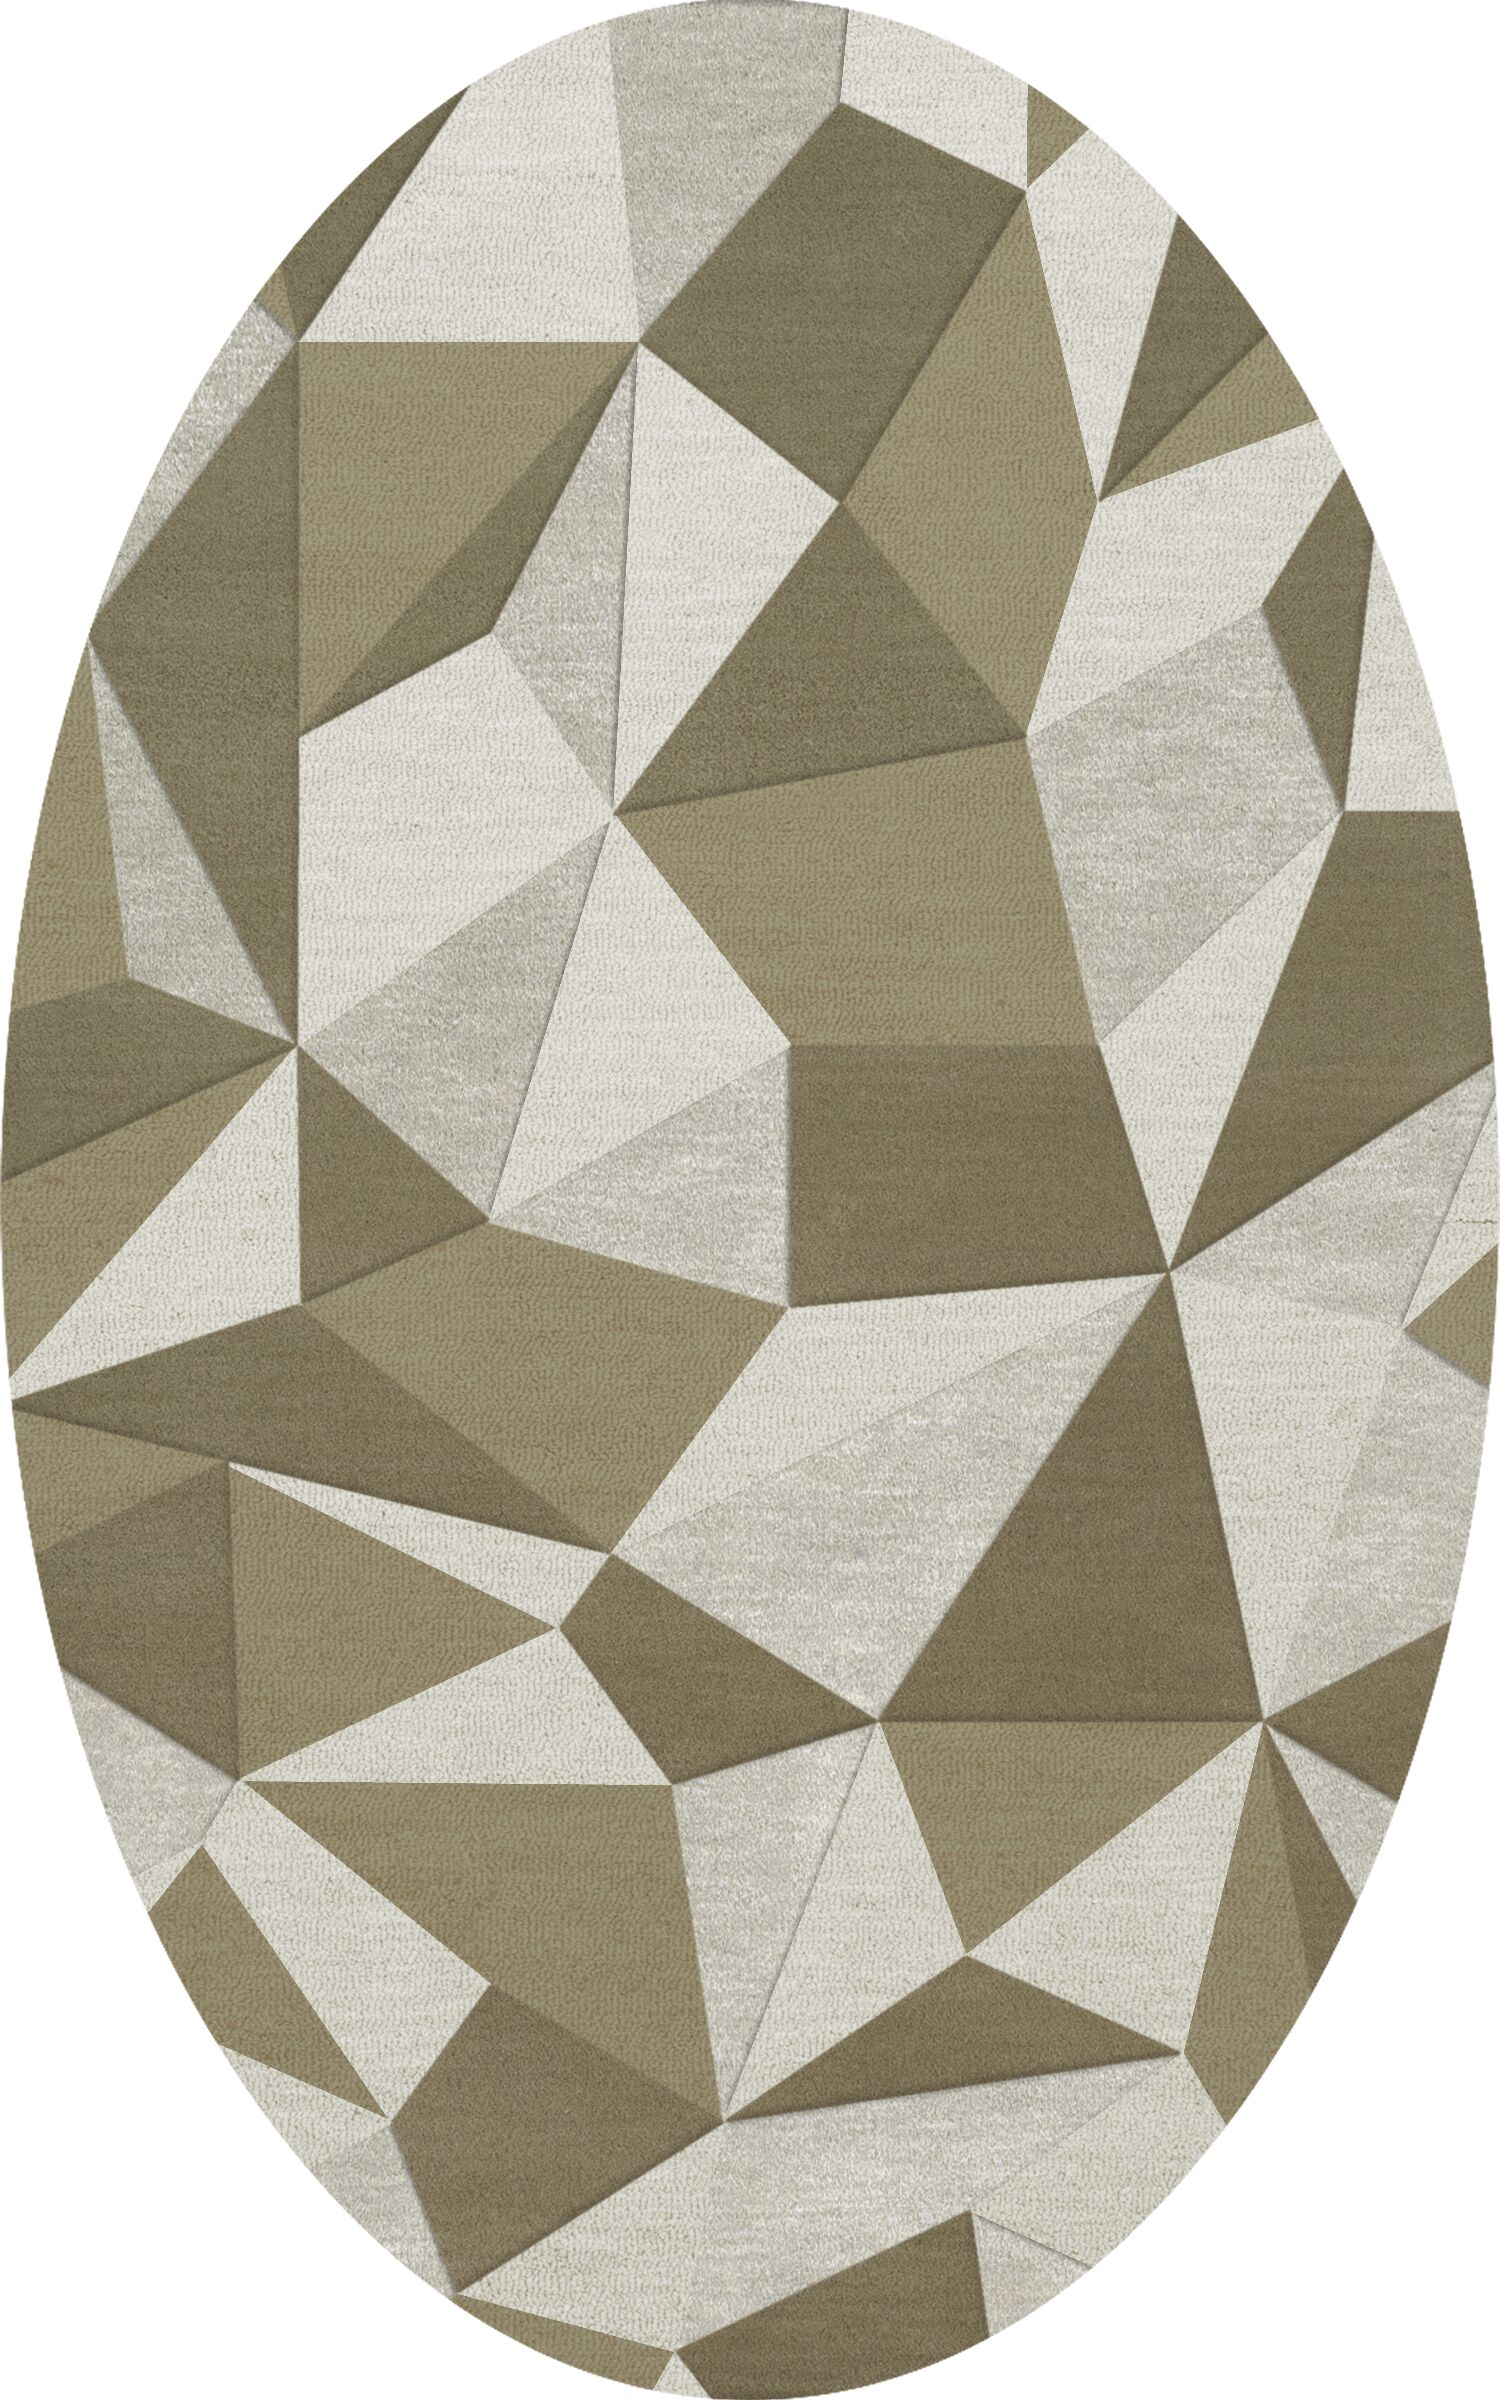 Bella Machine Woven Wool Beige/Gray Area Rug Rug Size: Oval 9' x 12'